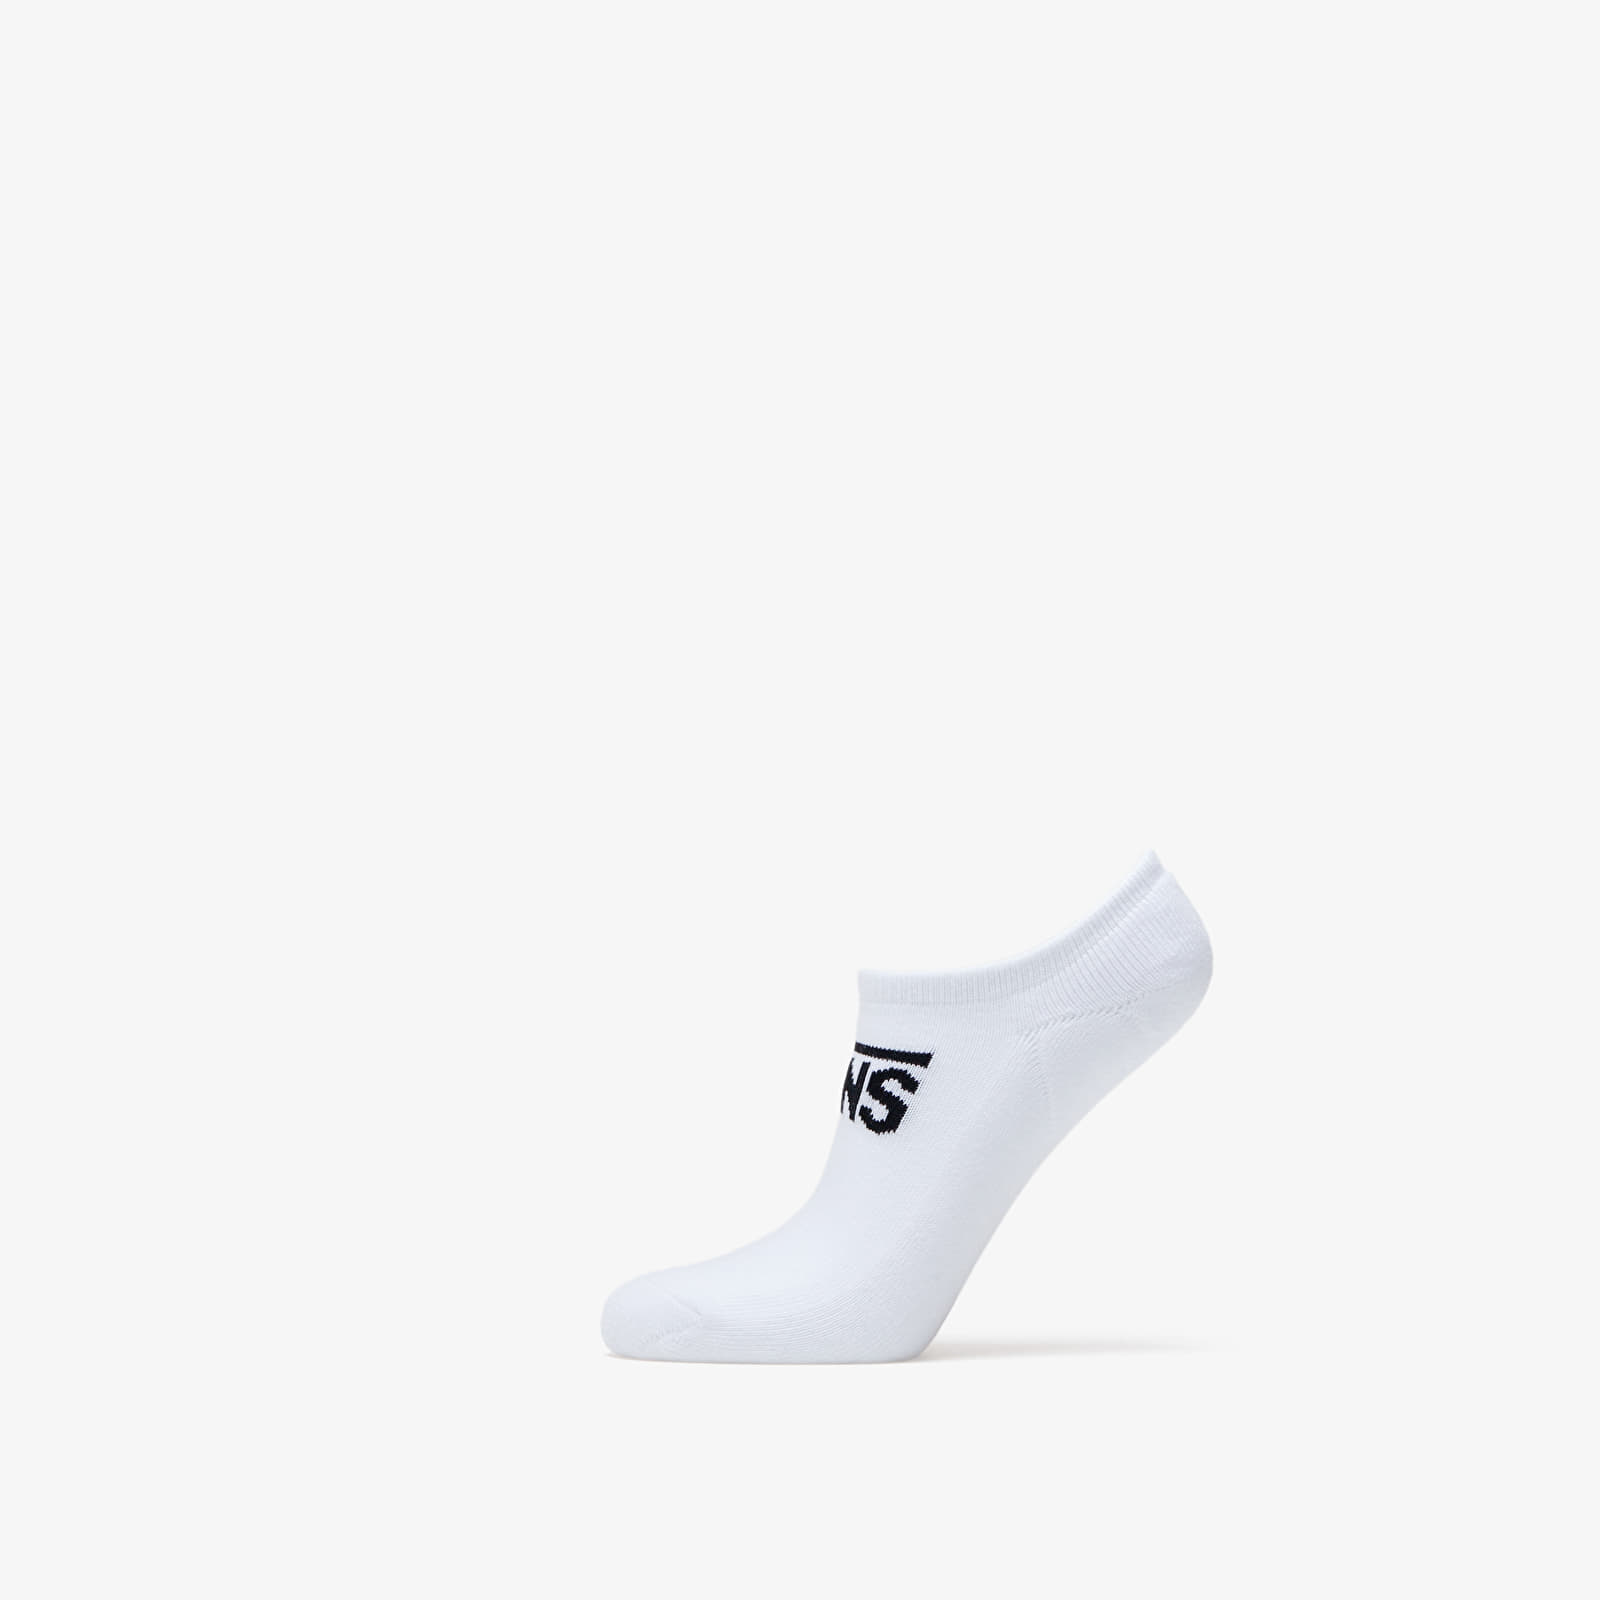 Чорапи Vans Classic Kick 3 Pair Socks White